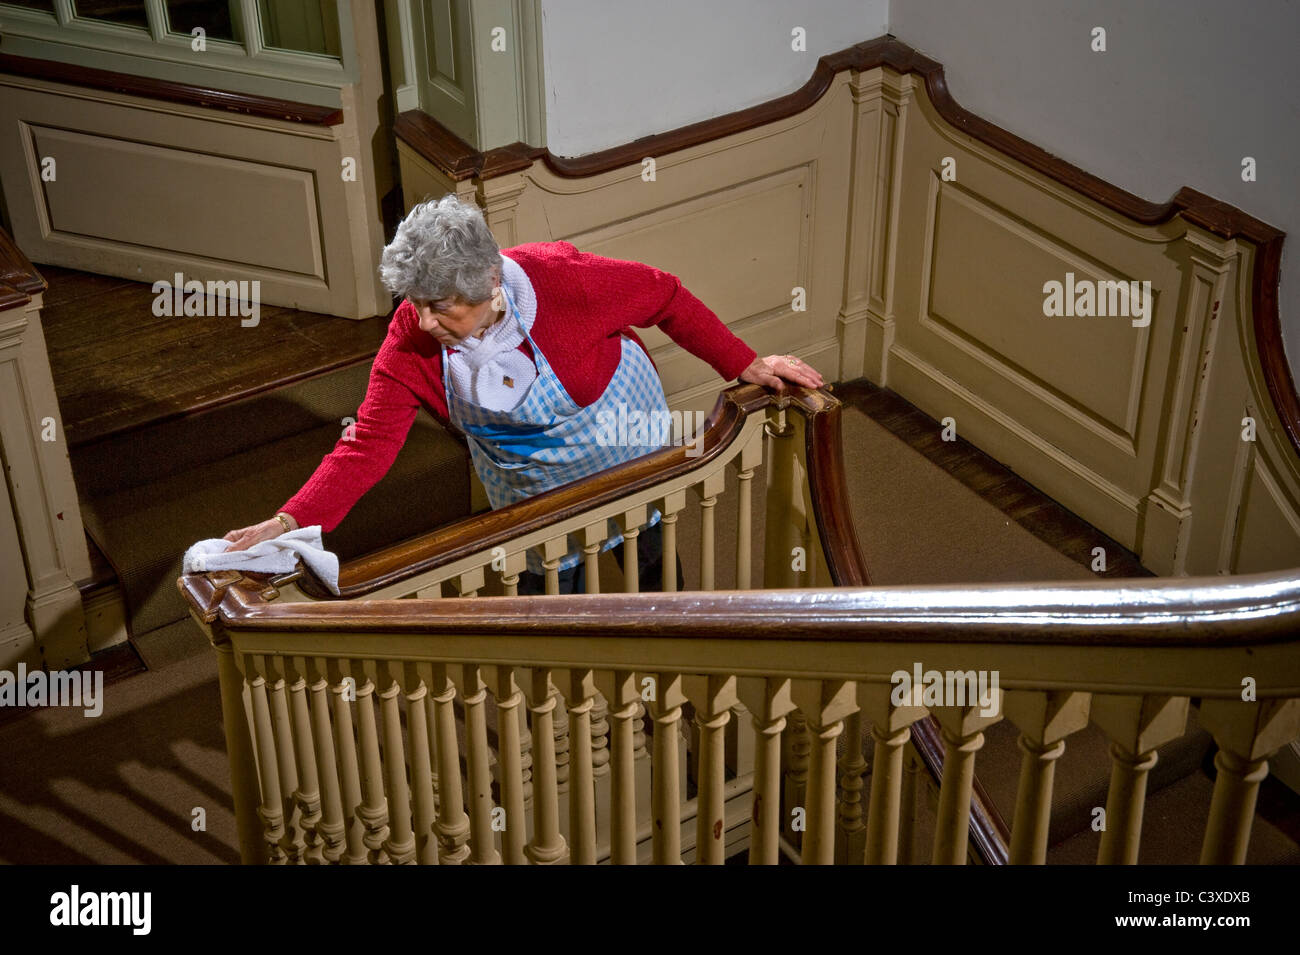 woman on steps washing in stockfotos woman on steps washing in bilder alamy. Black Bedroom Furniture Sets. Home Design Ideas